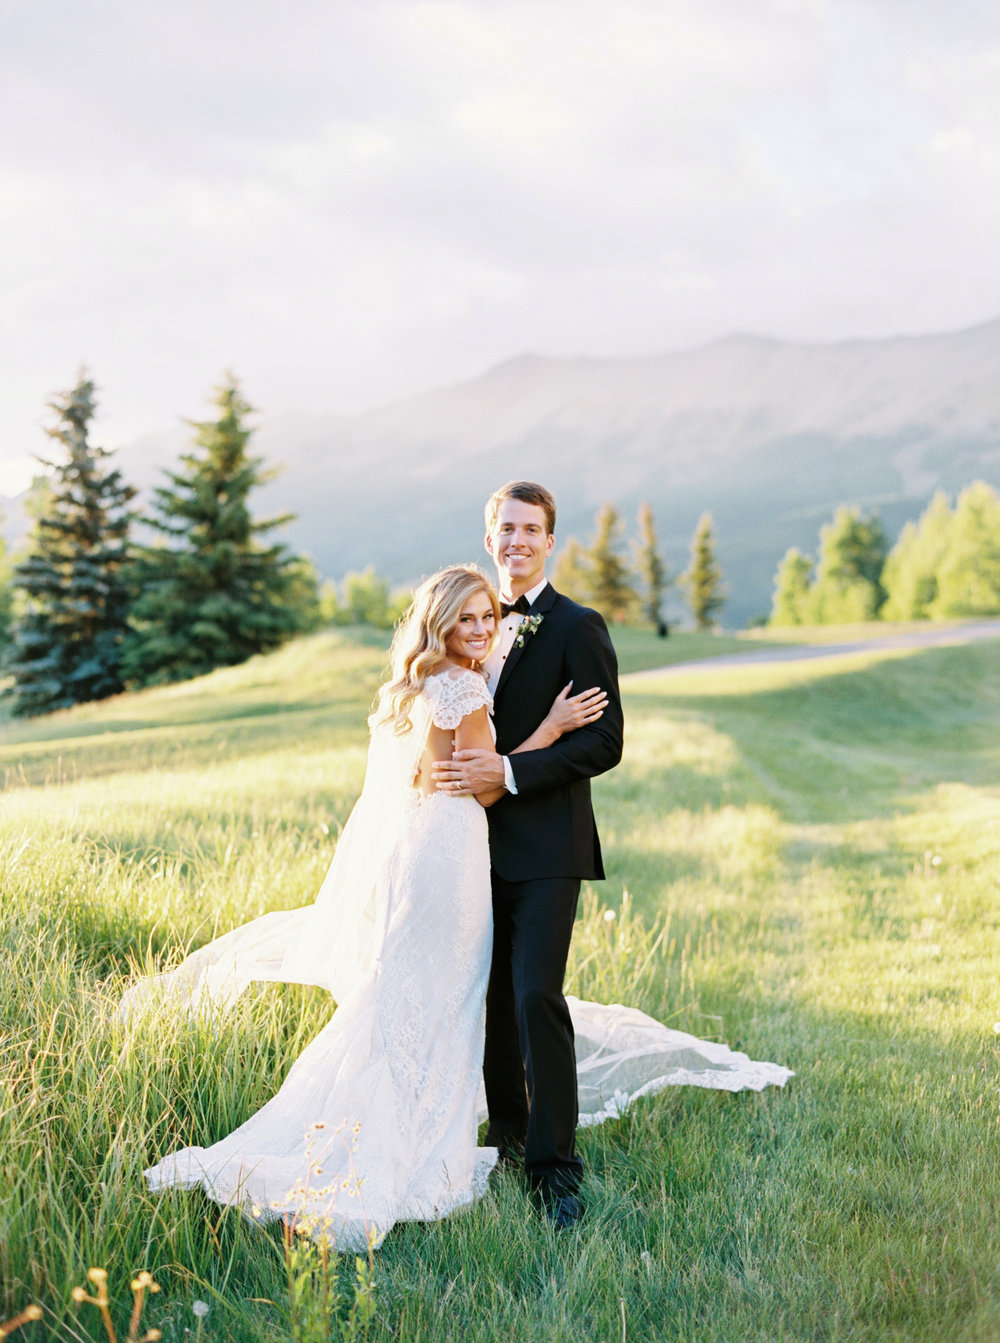 Alissa & Shelton   Featured on Style Me Pretty and Rocky Mountain Bride